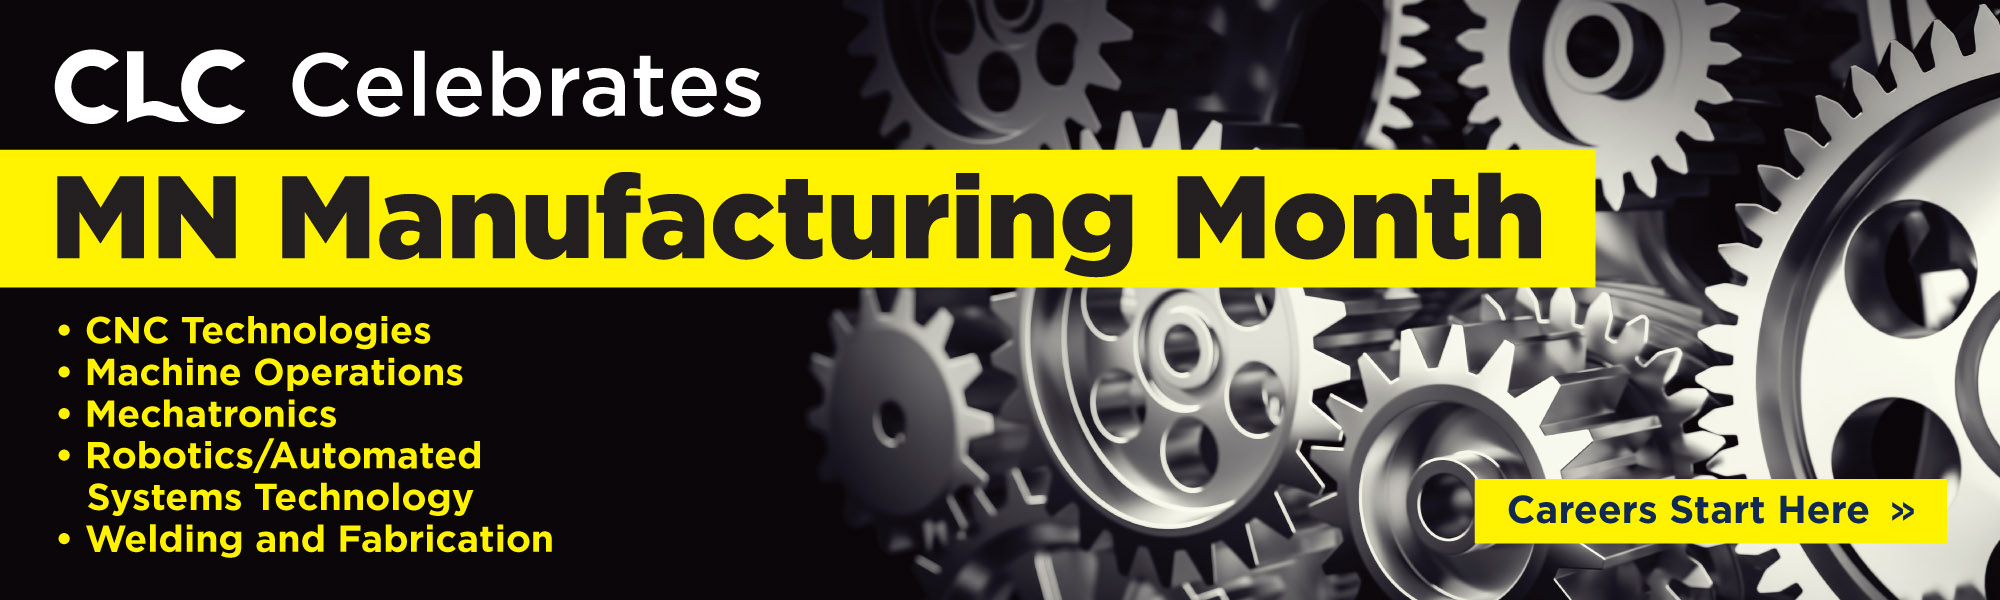 MN Manufacturing Month